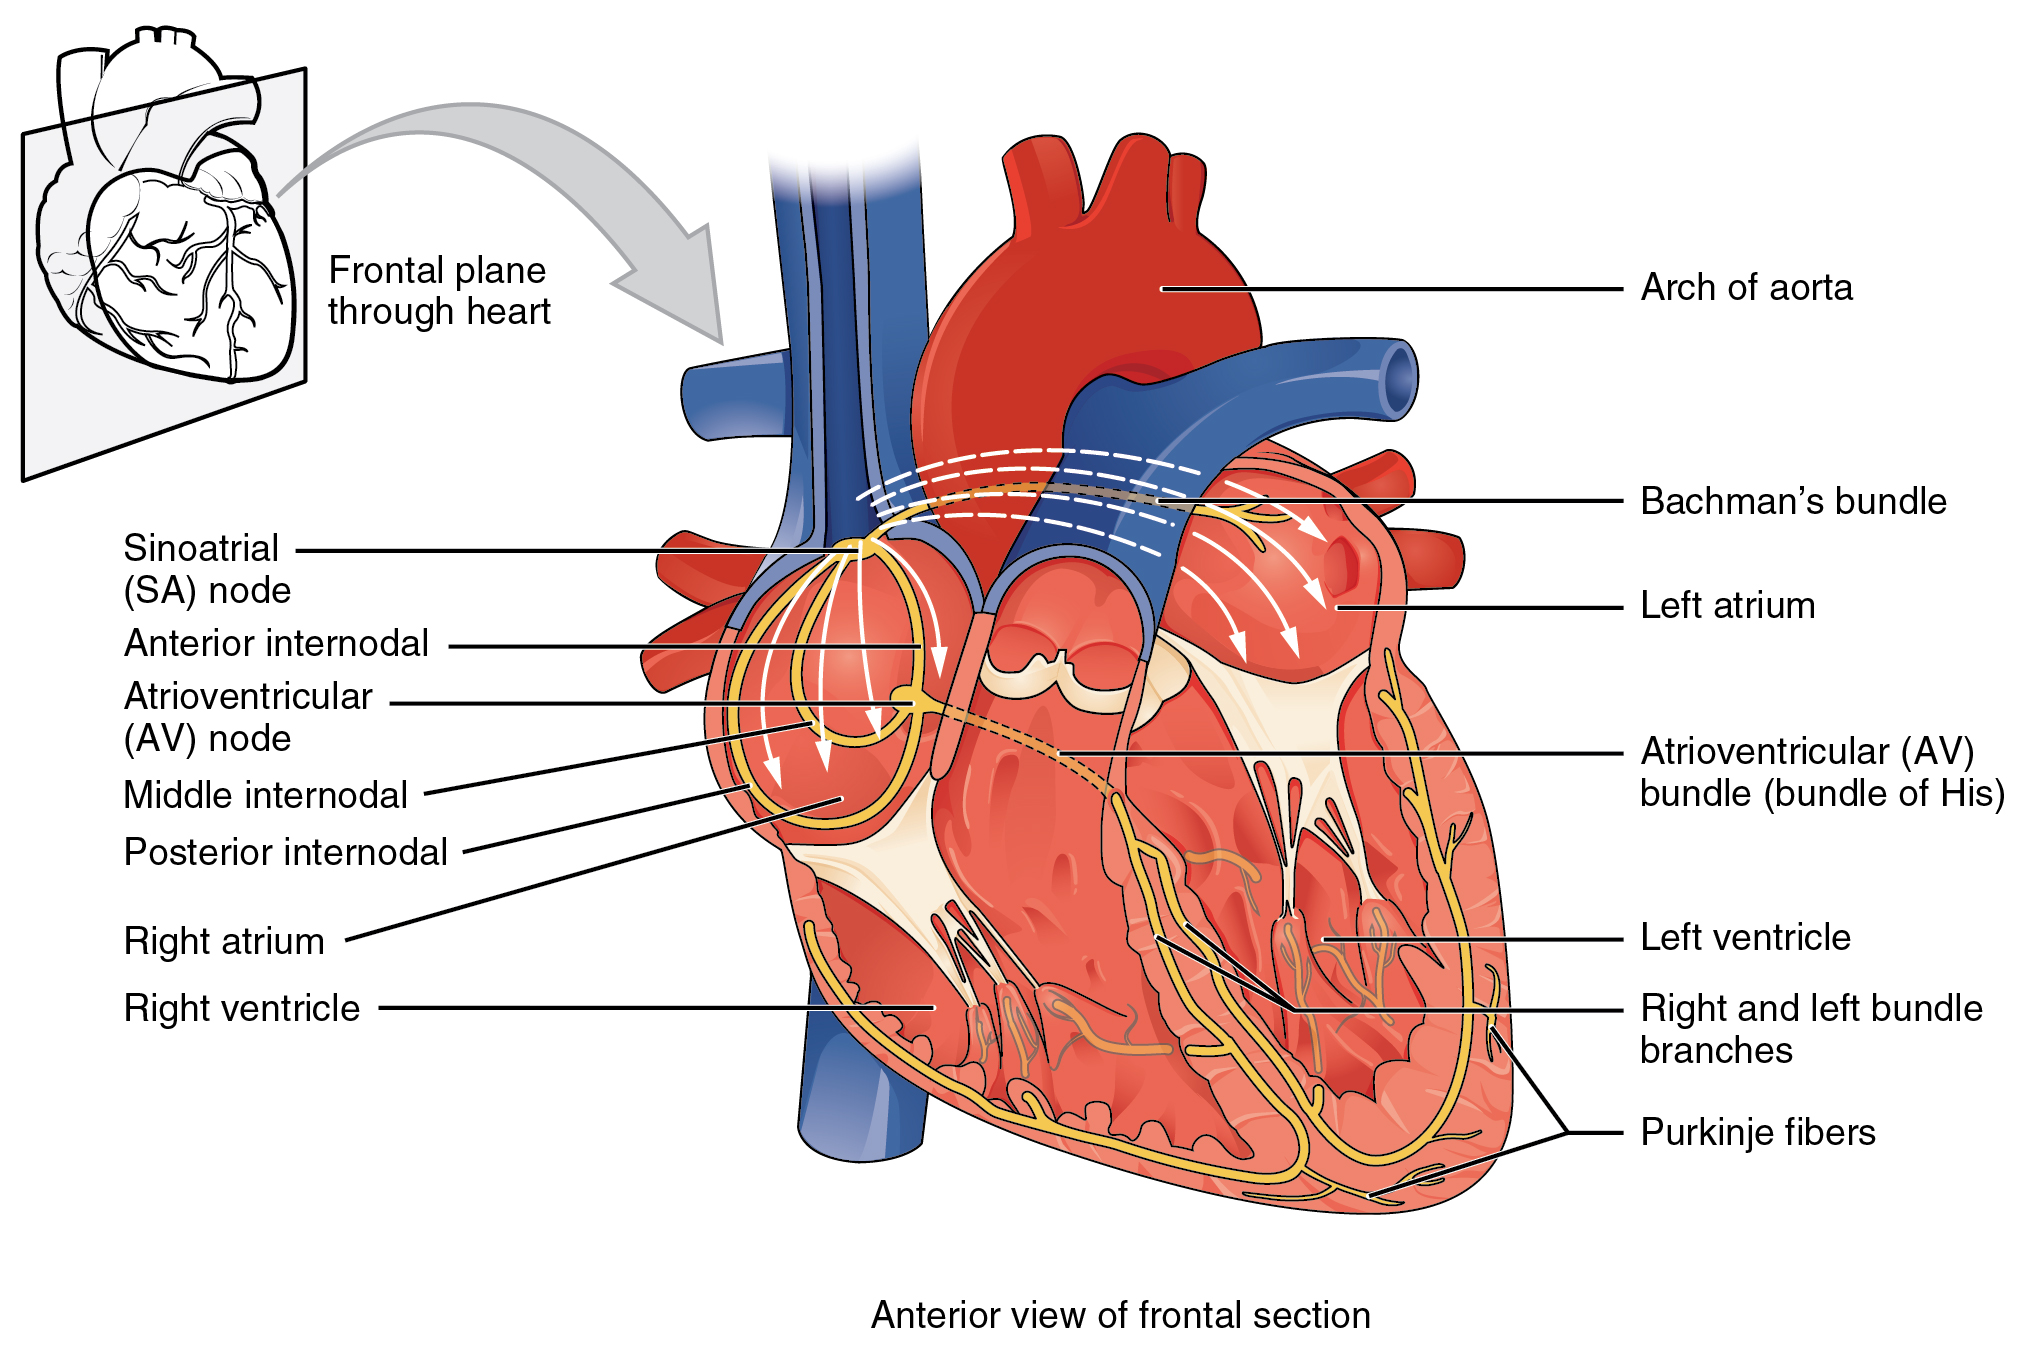 File:2018 Conduction System of Heart.jpg - Wikimedia Commons